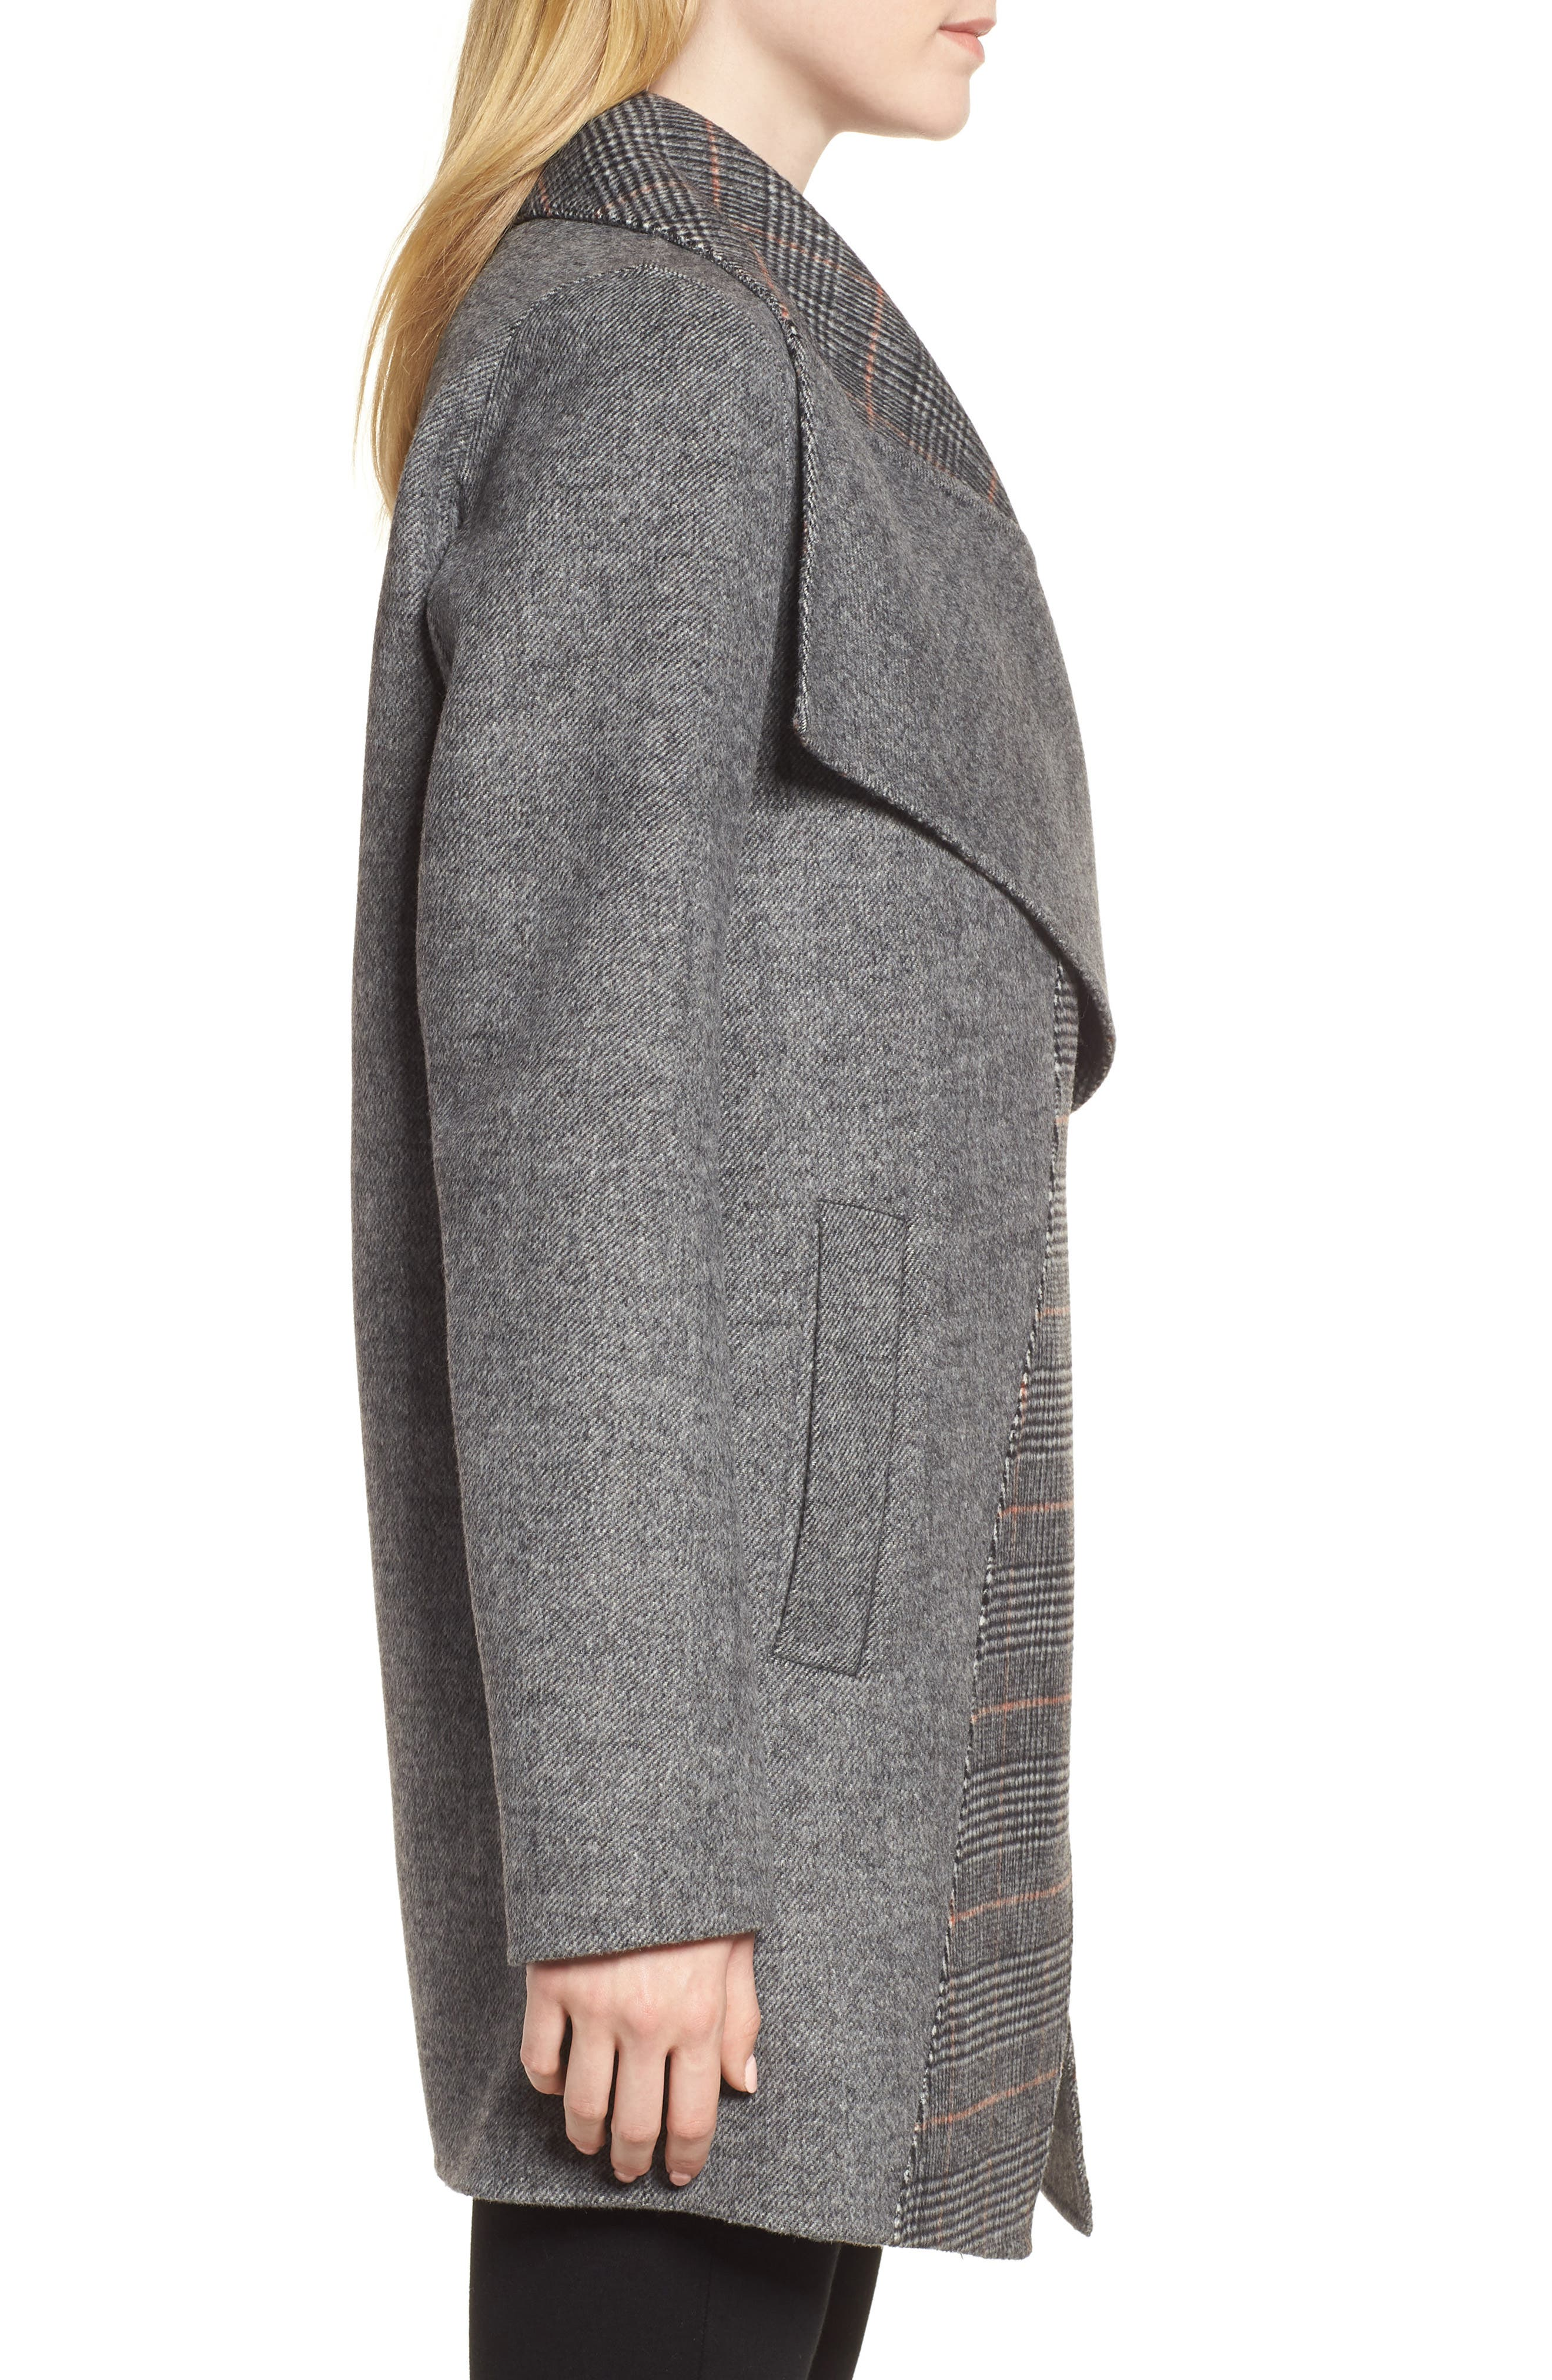 Nicky Double Face Wool Blend Oversize Coat,                             Alternate thumbnail 3, color,                             GREY COMBO TWILL/ PLAID